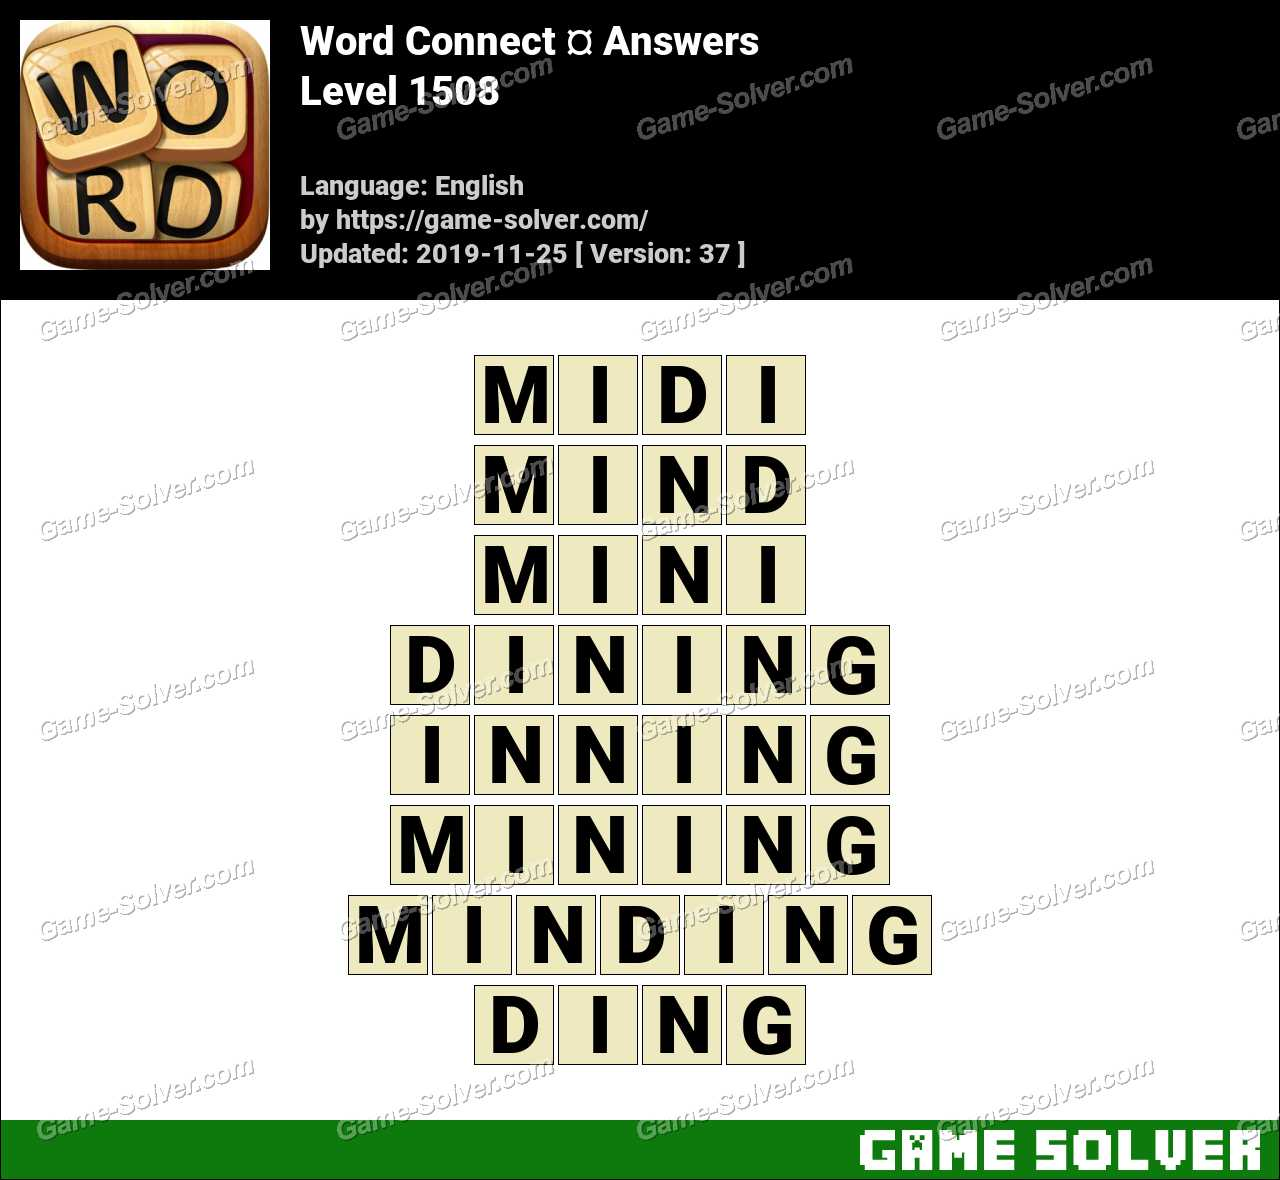 Word Connect Level 1508 Answers